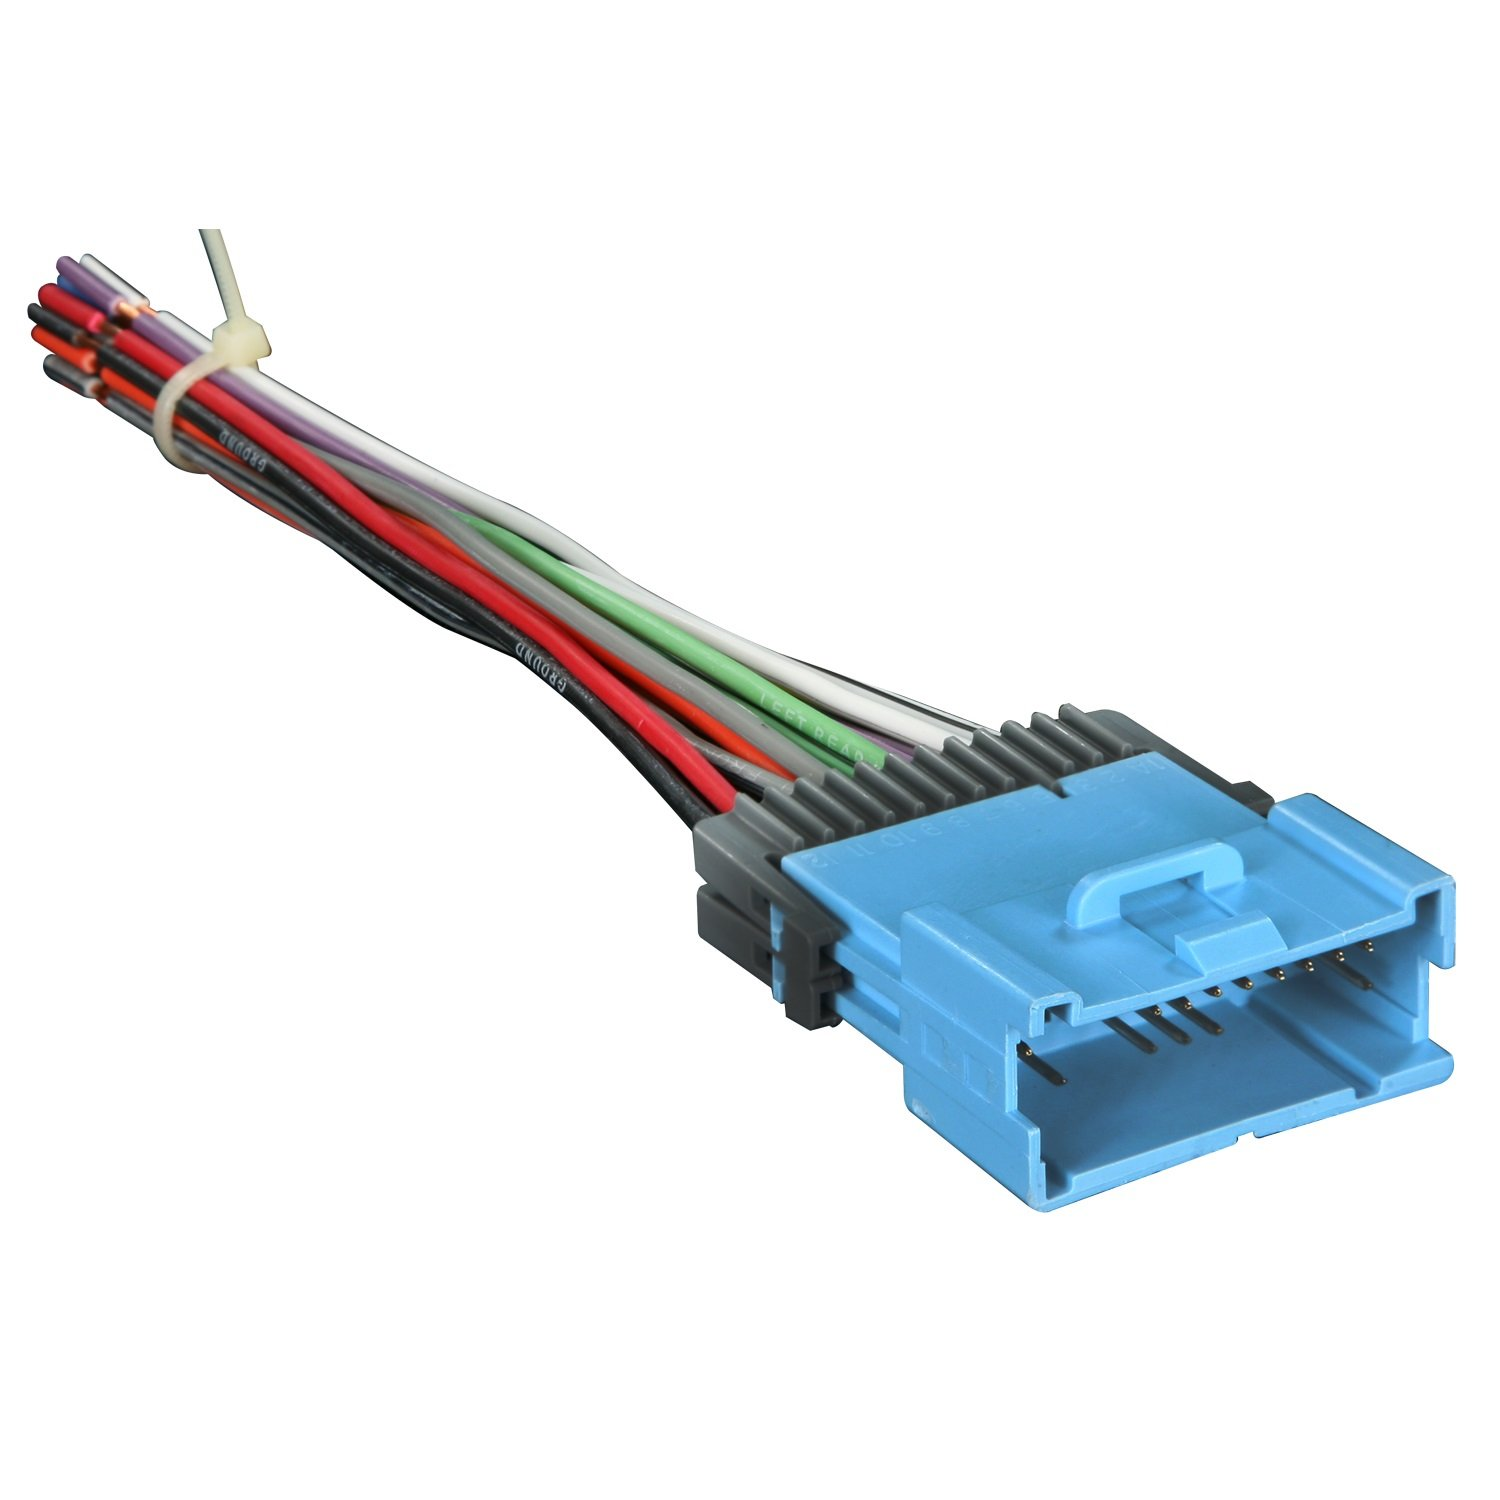 61ruWw 2aJL._SL1500_ amazon com metra 70 2102 radio wiring harness for gm 04 05 car saturn vue radio wiring diagram at crackthecode.co